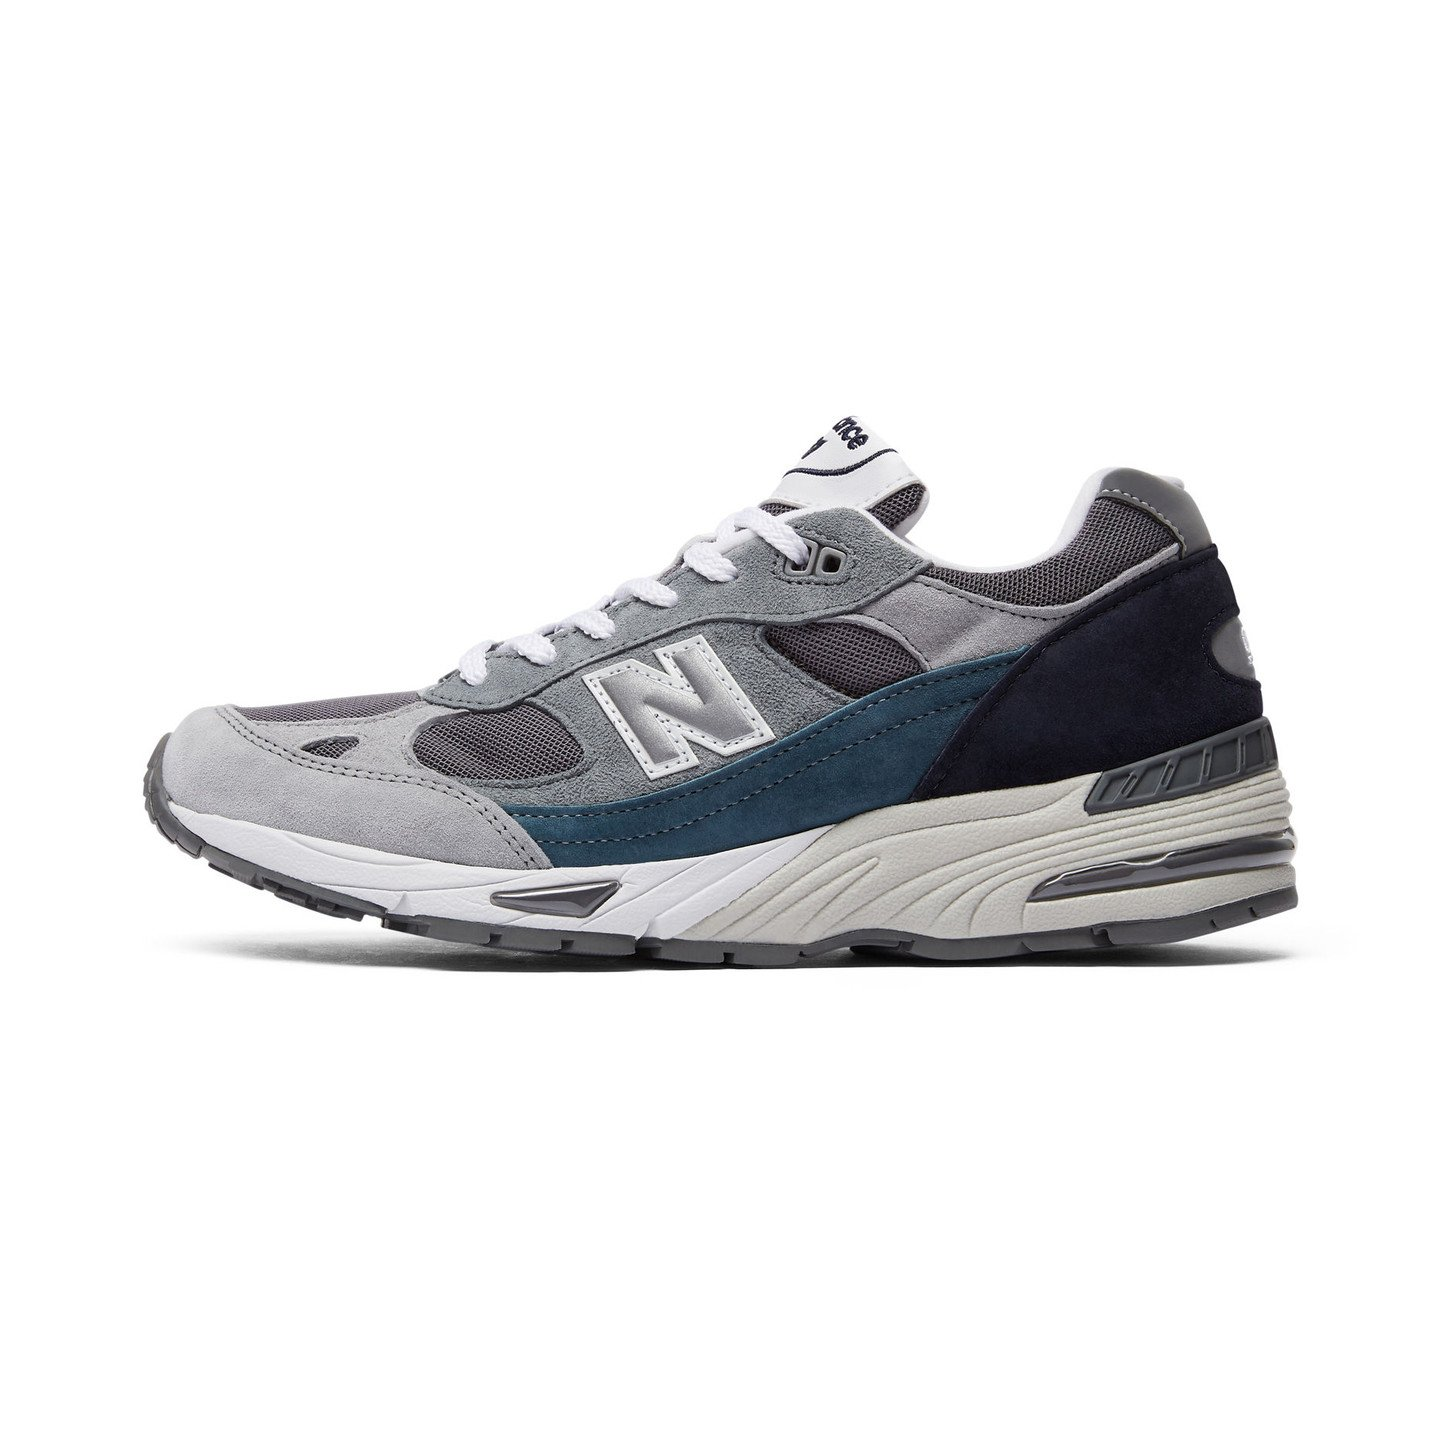 New Balance M991 GBT - Made in England Grey / Blue / Teal M991GBT